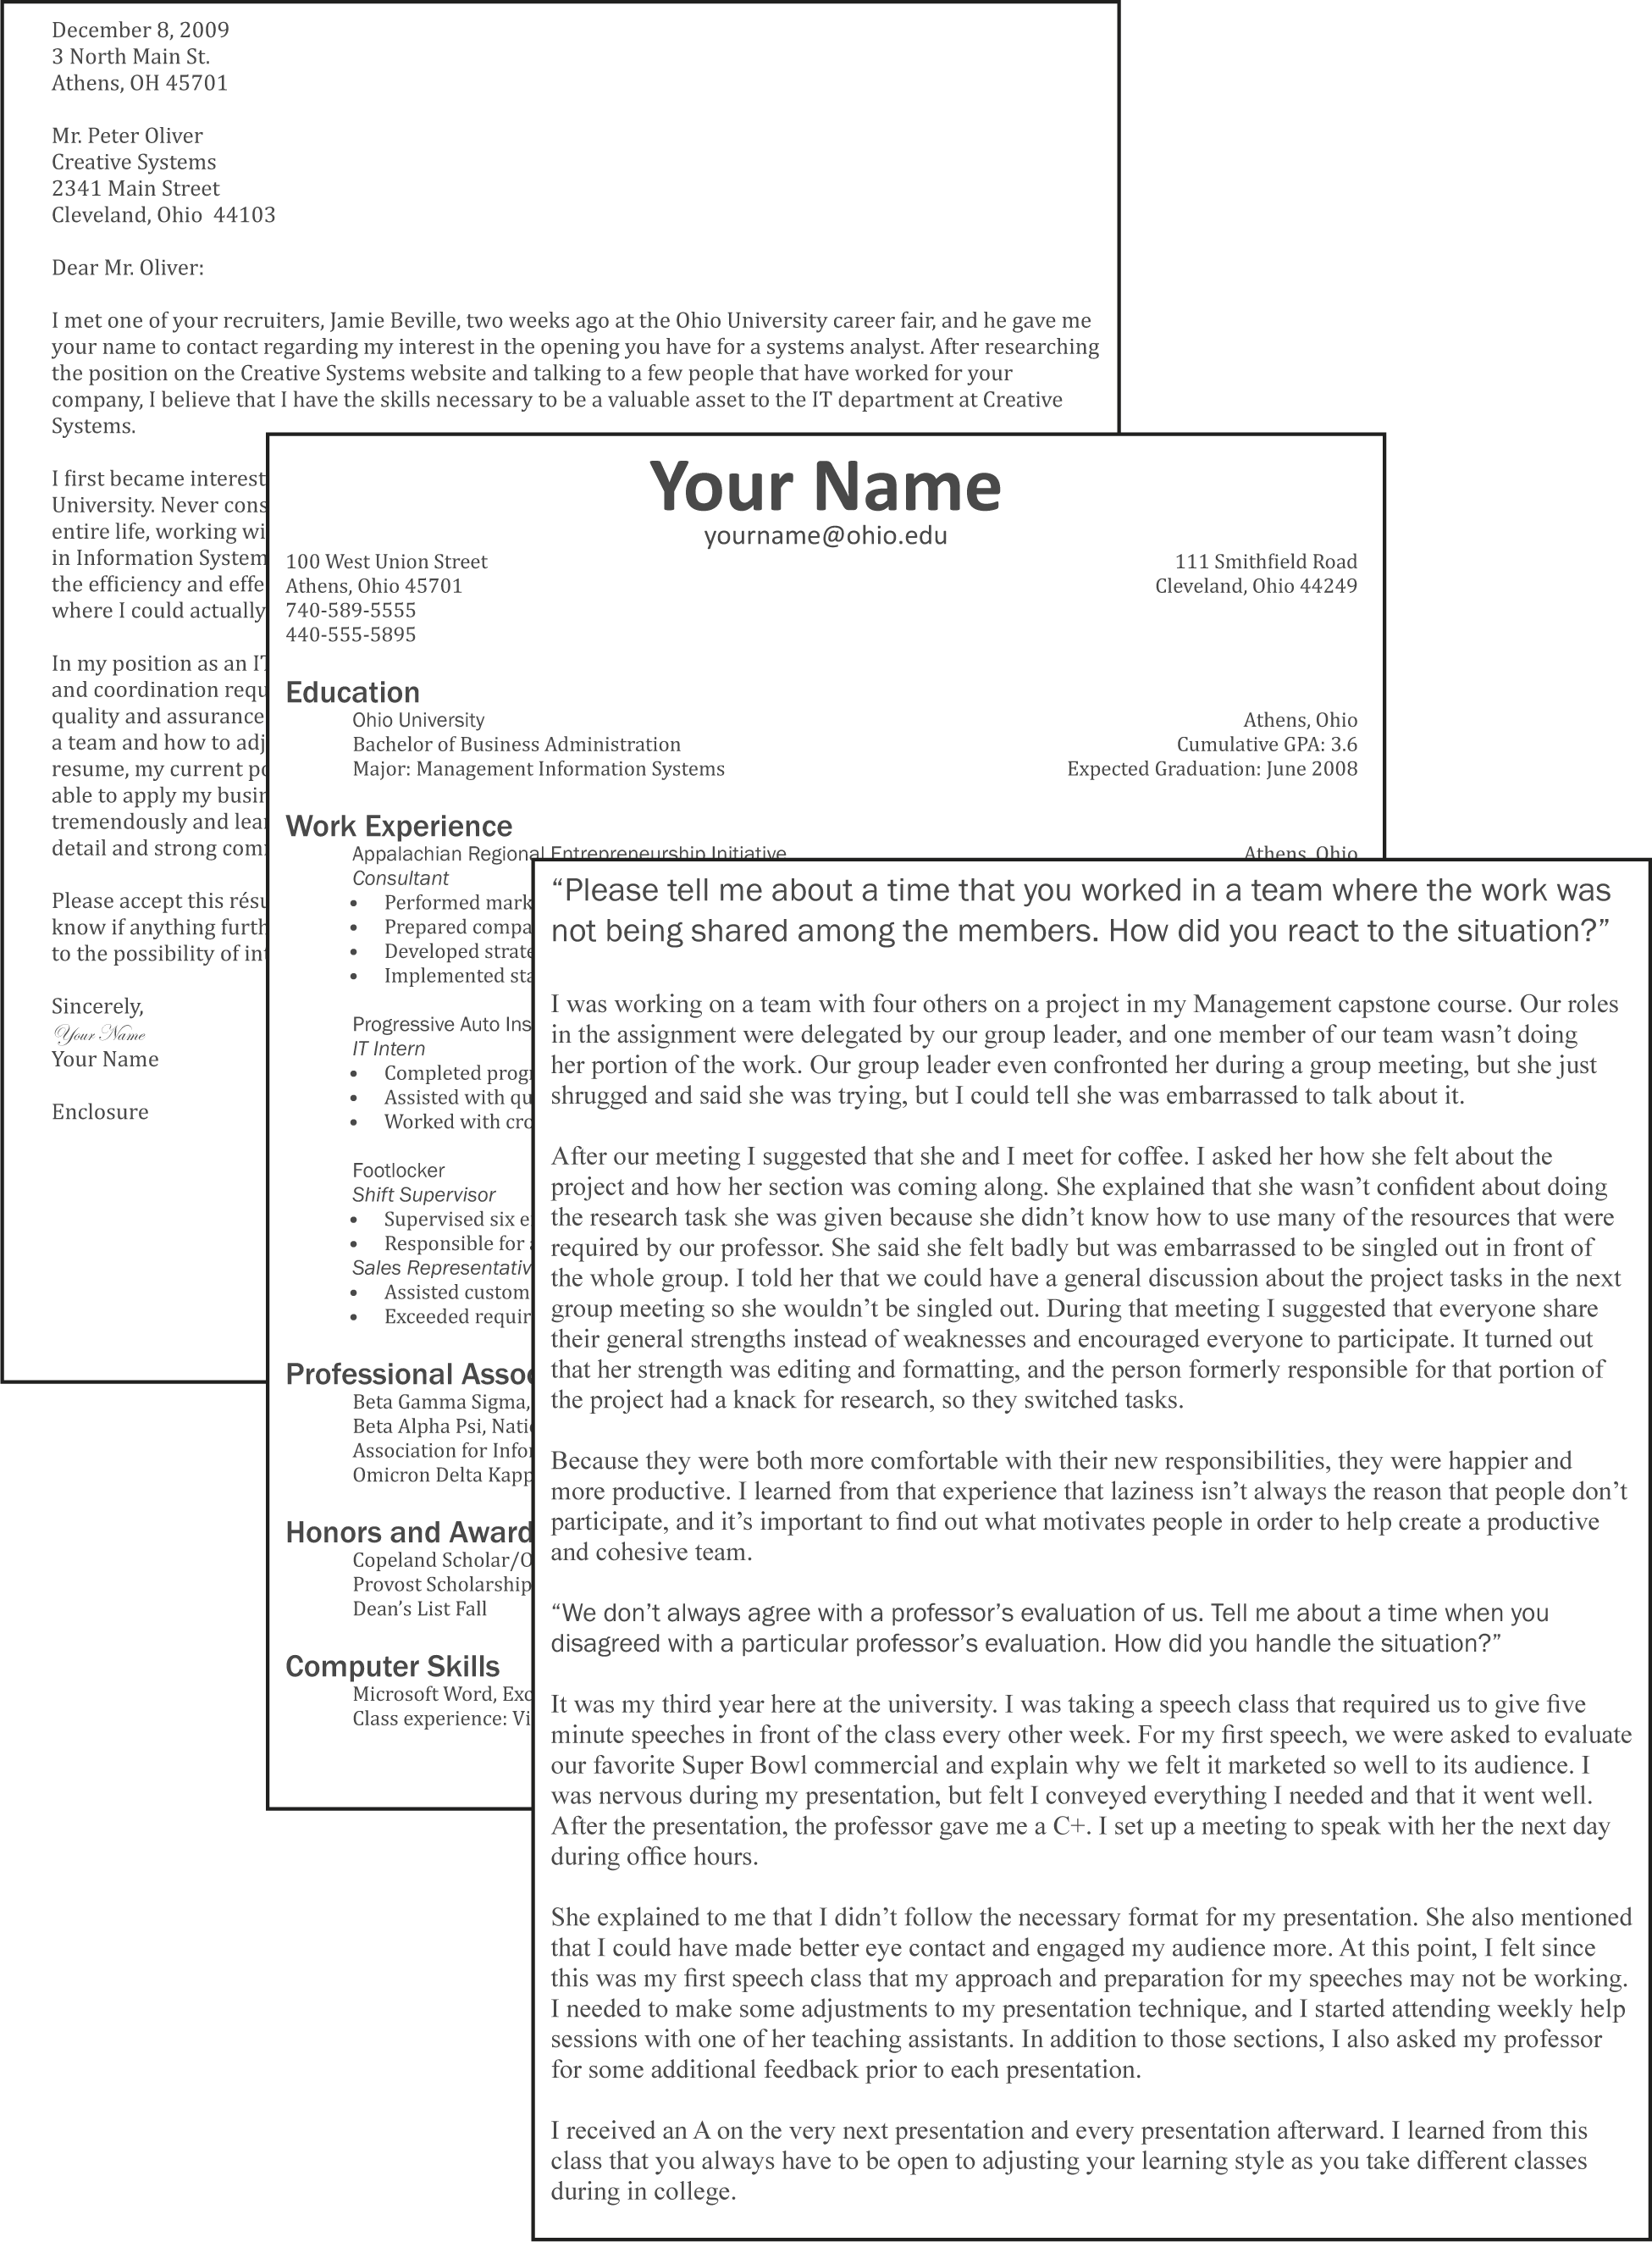 l3 assignment resume cover letter and interview - How To Create A Resume And Cover Letter